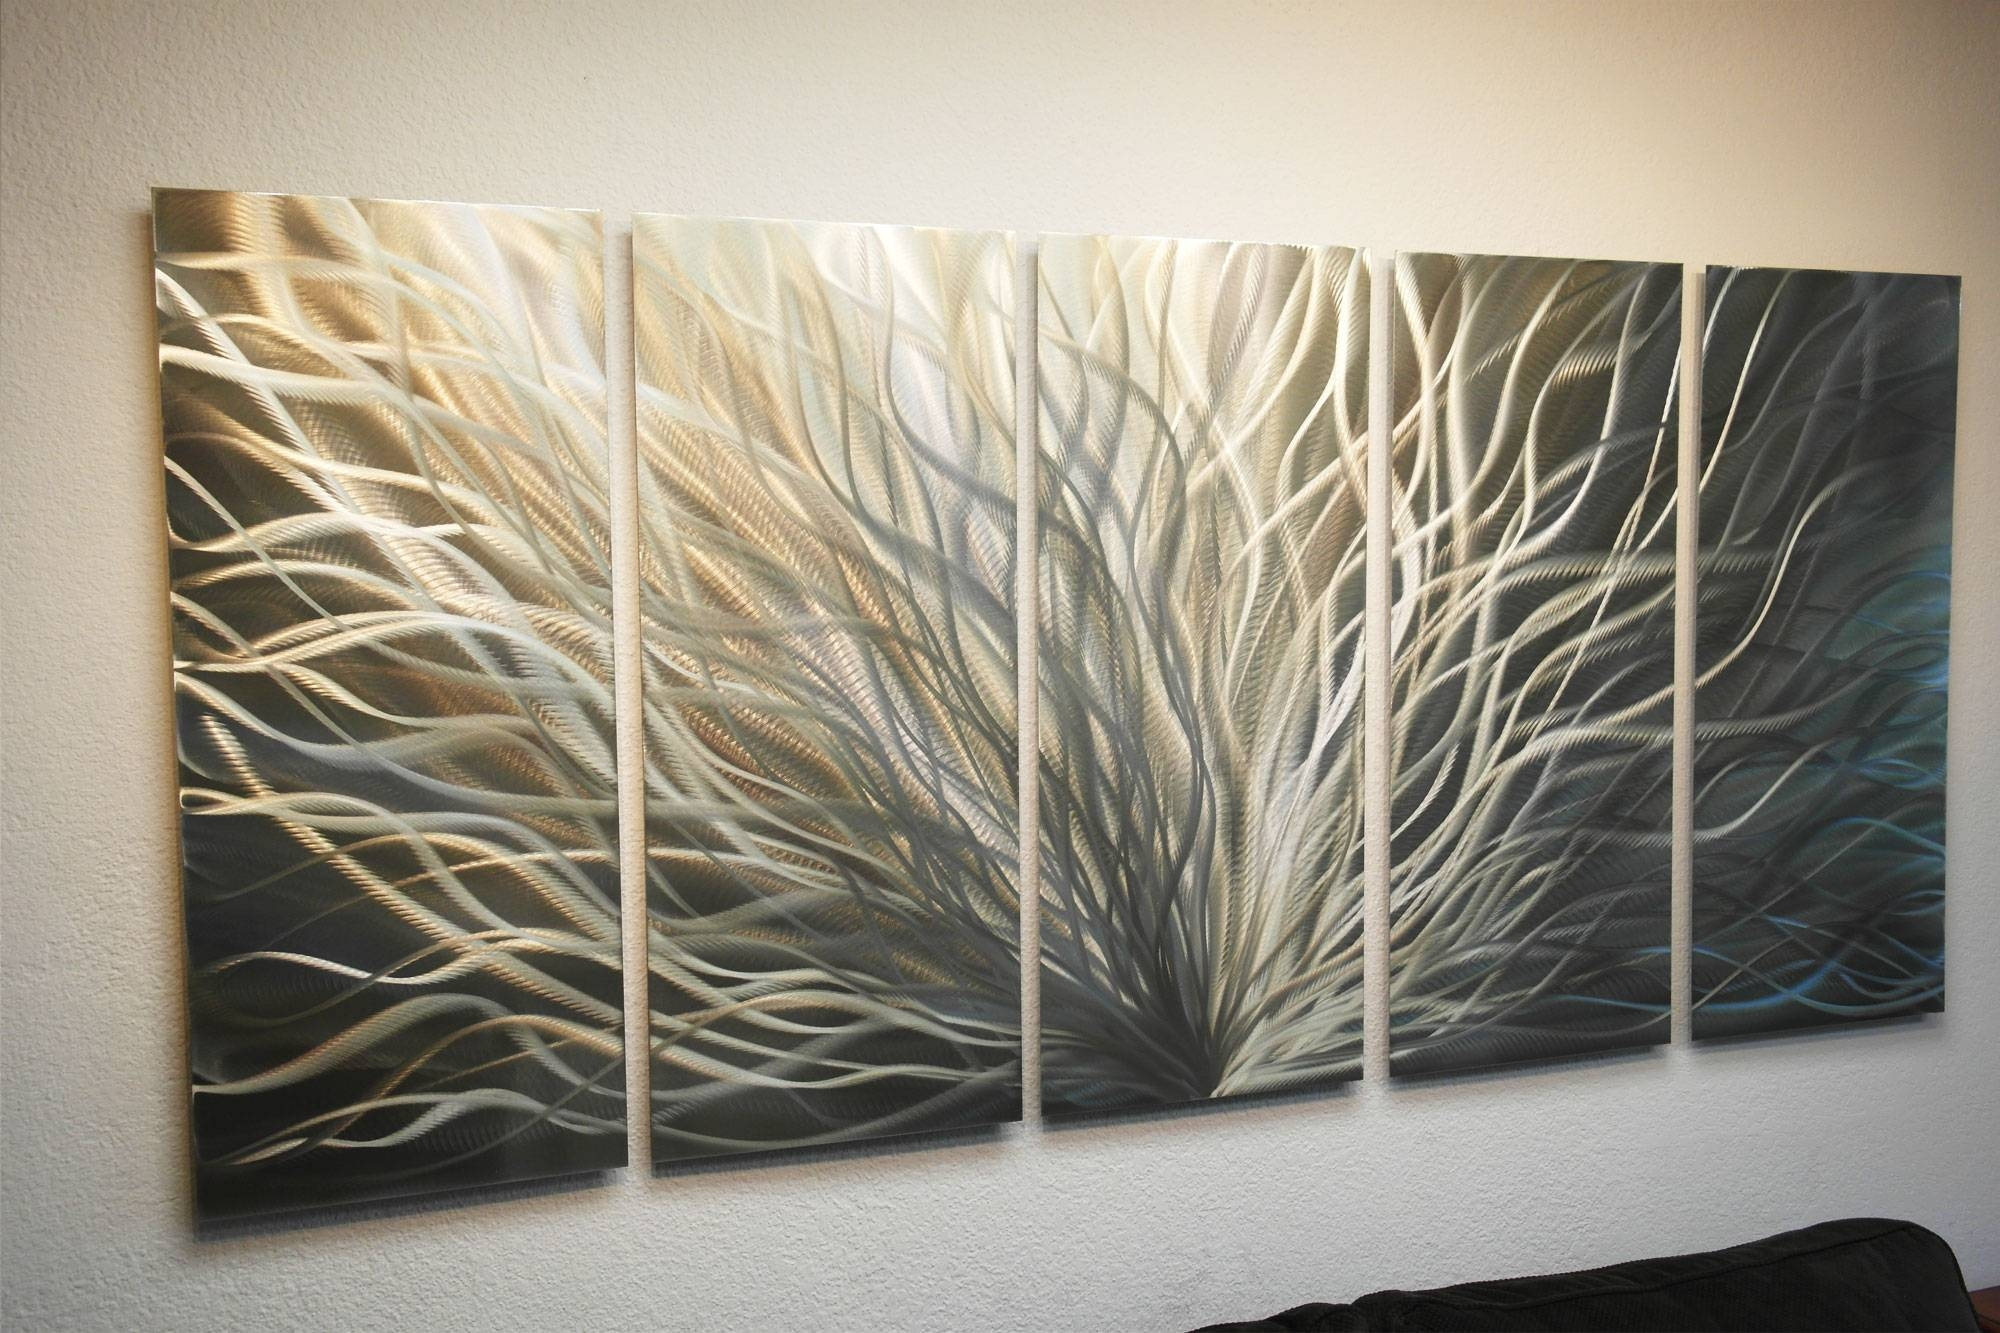 Radiance Gold Silver 36x79 – Metal Wall Art Abstract Sculpture Within Latest Silver Metal Wall Art (Gallery 13 of 20)